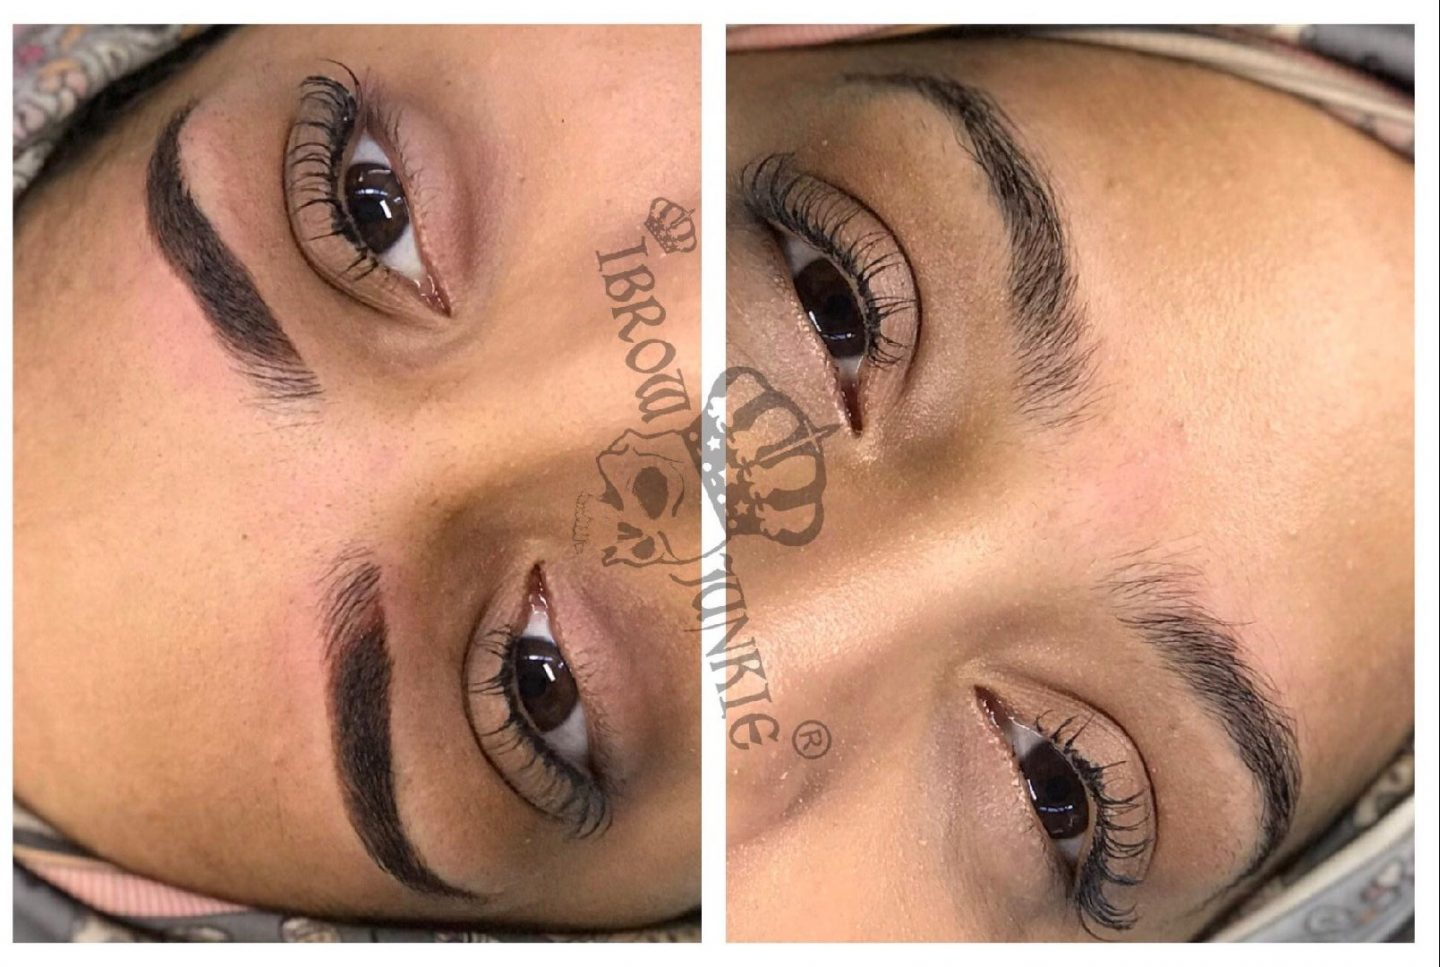 Permanent Make Up Ibrow Junkie Ibrow Junkie Permanent Make Up